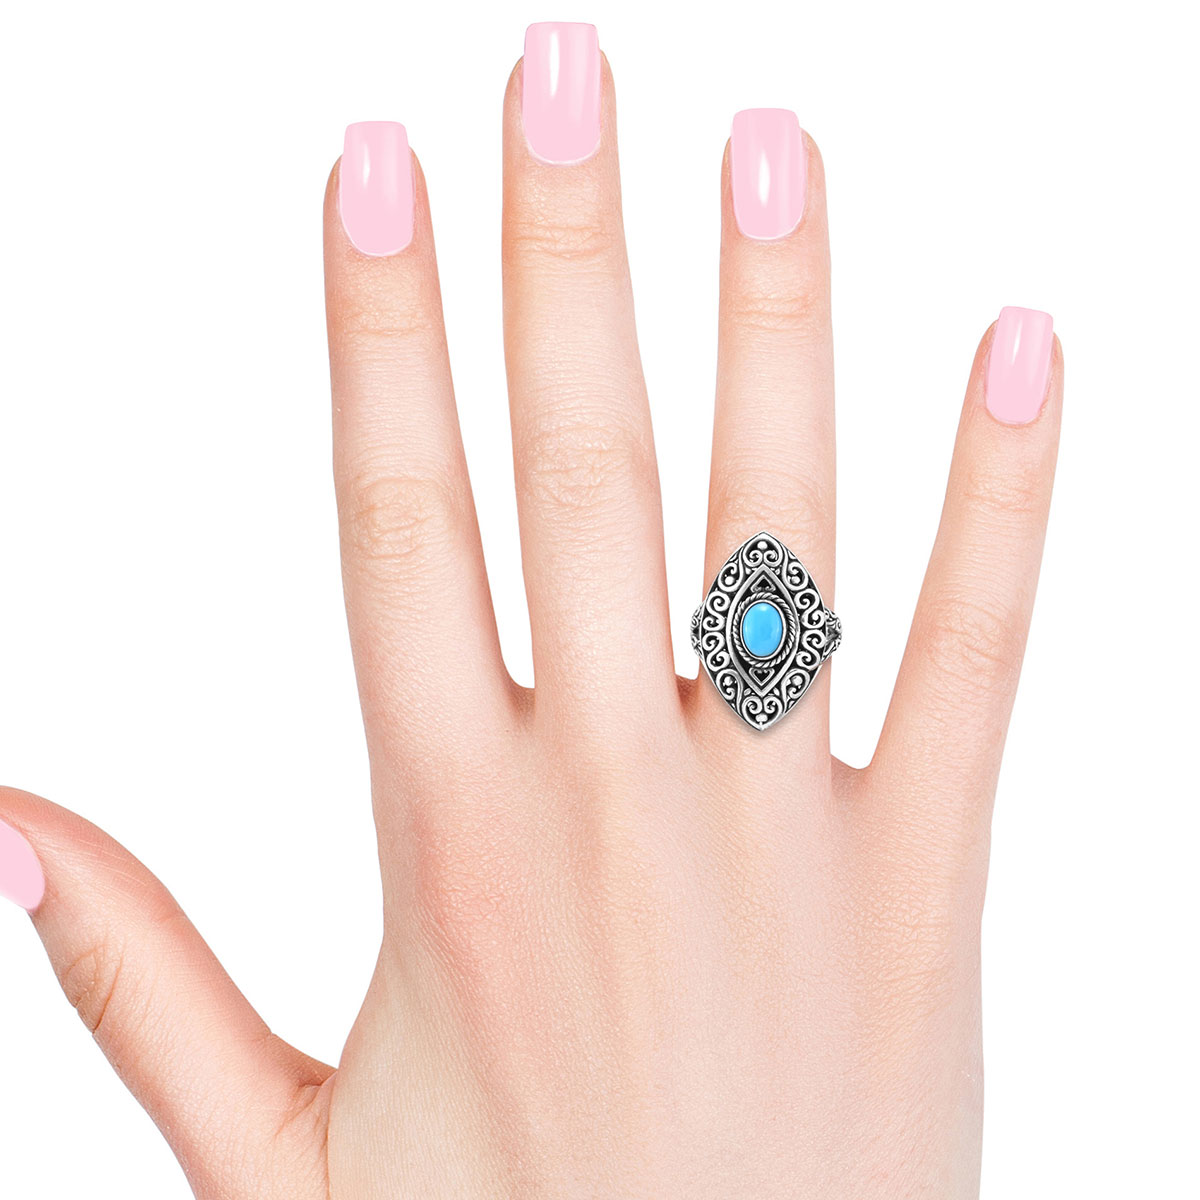 Bali Legacy Arizona Sleeping Beauty Turquoise Ring in Sterling Silver (Size 8.0) 1.10 ctw